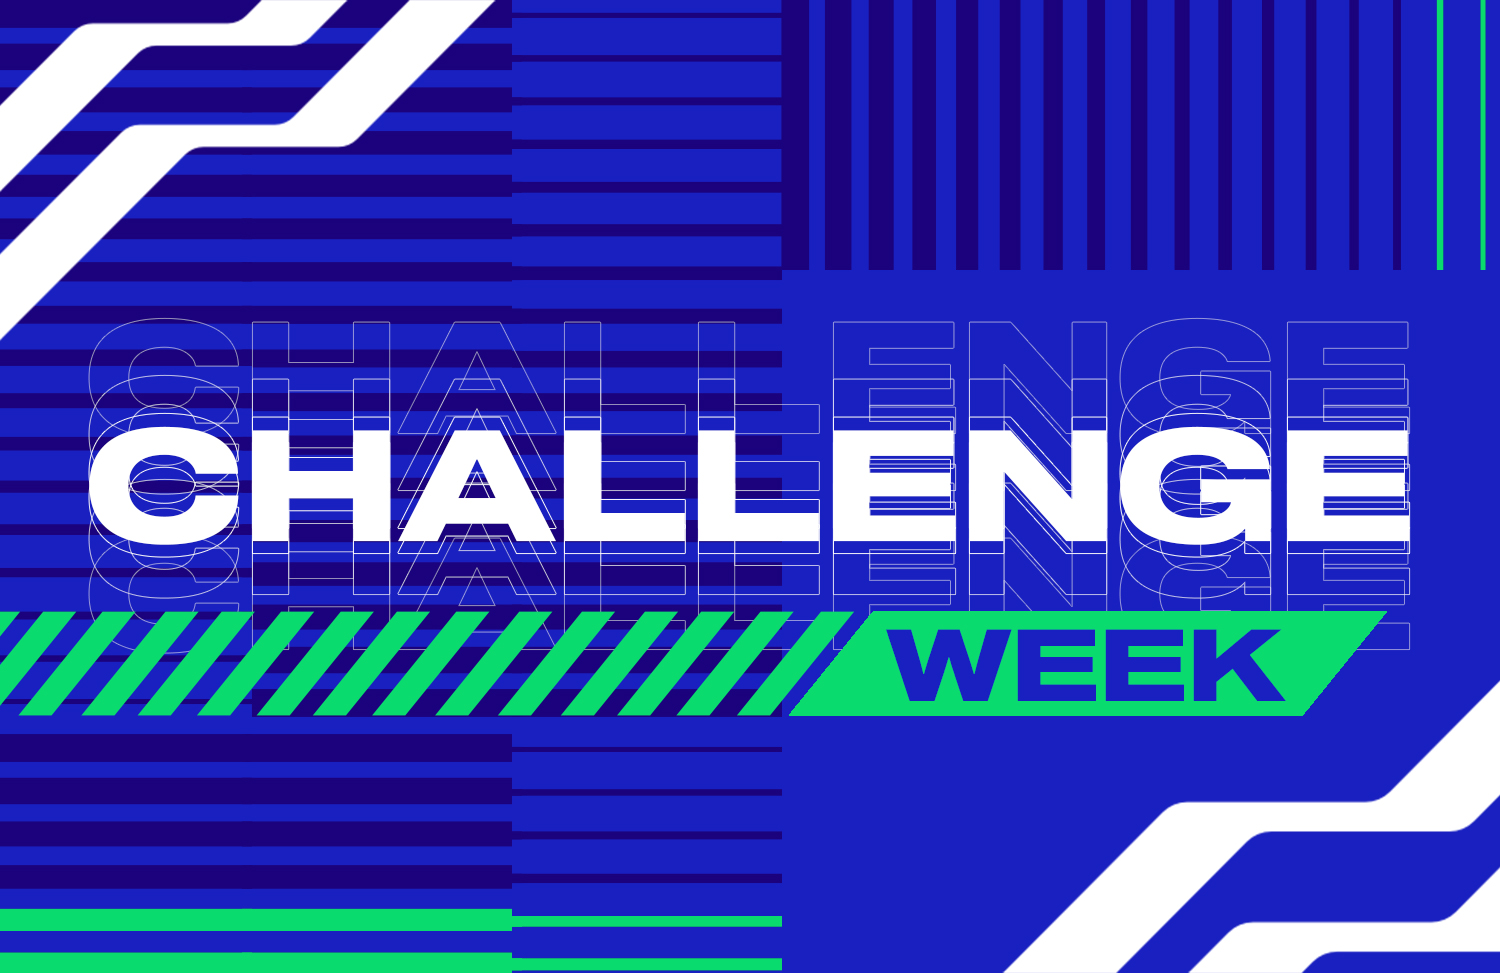 It's finally here. Ready yourself for a marathon of challenges.